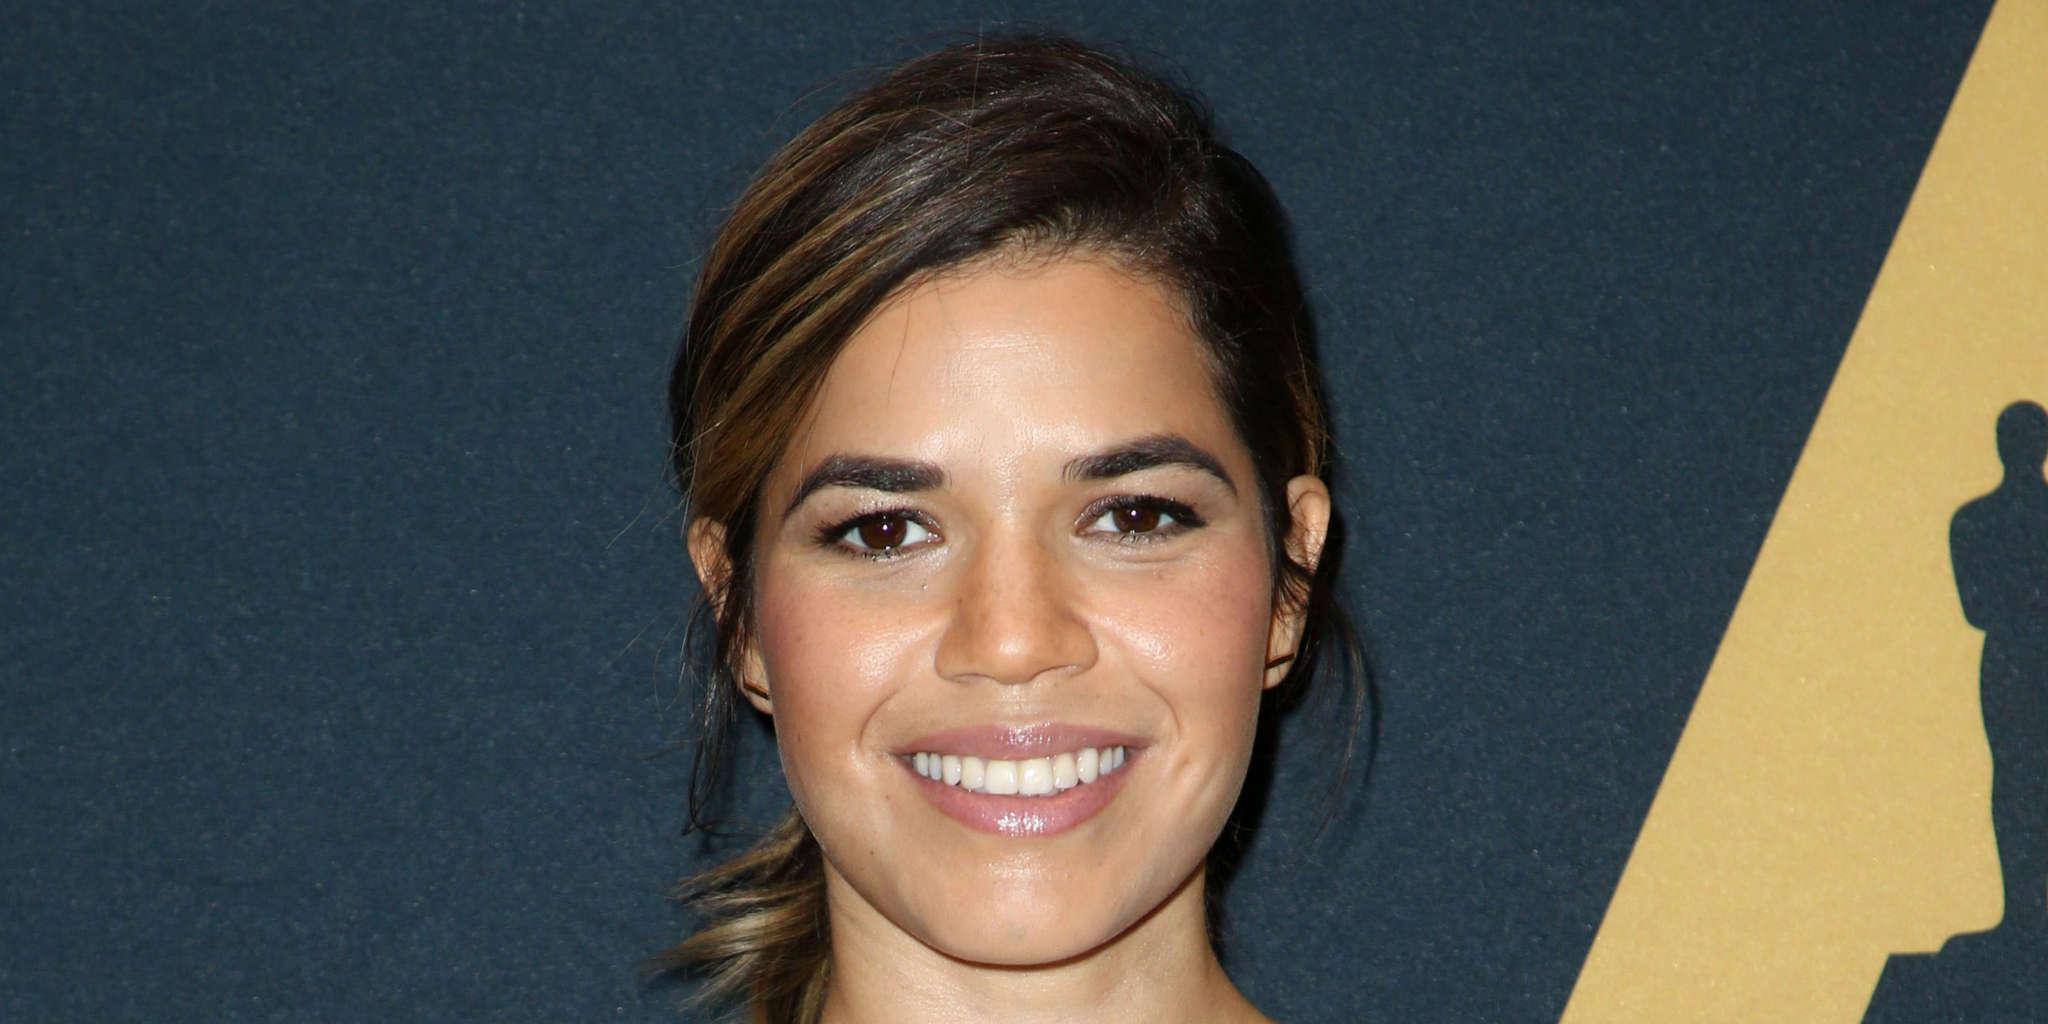 America Ferrera Welcomes Her Second Child - See The Sweet Mother's Day Announcement!